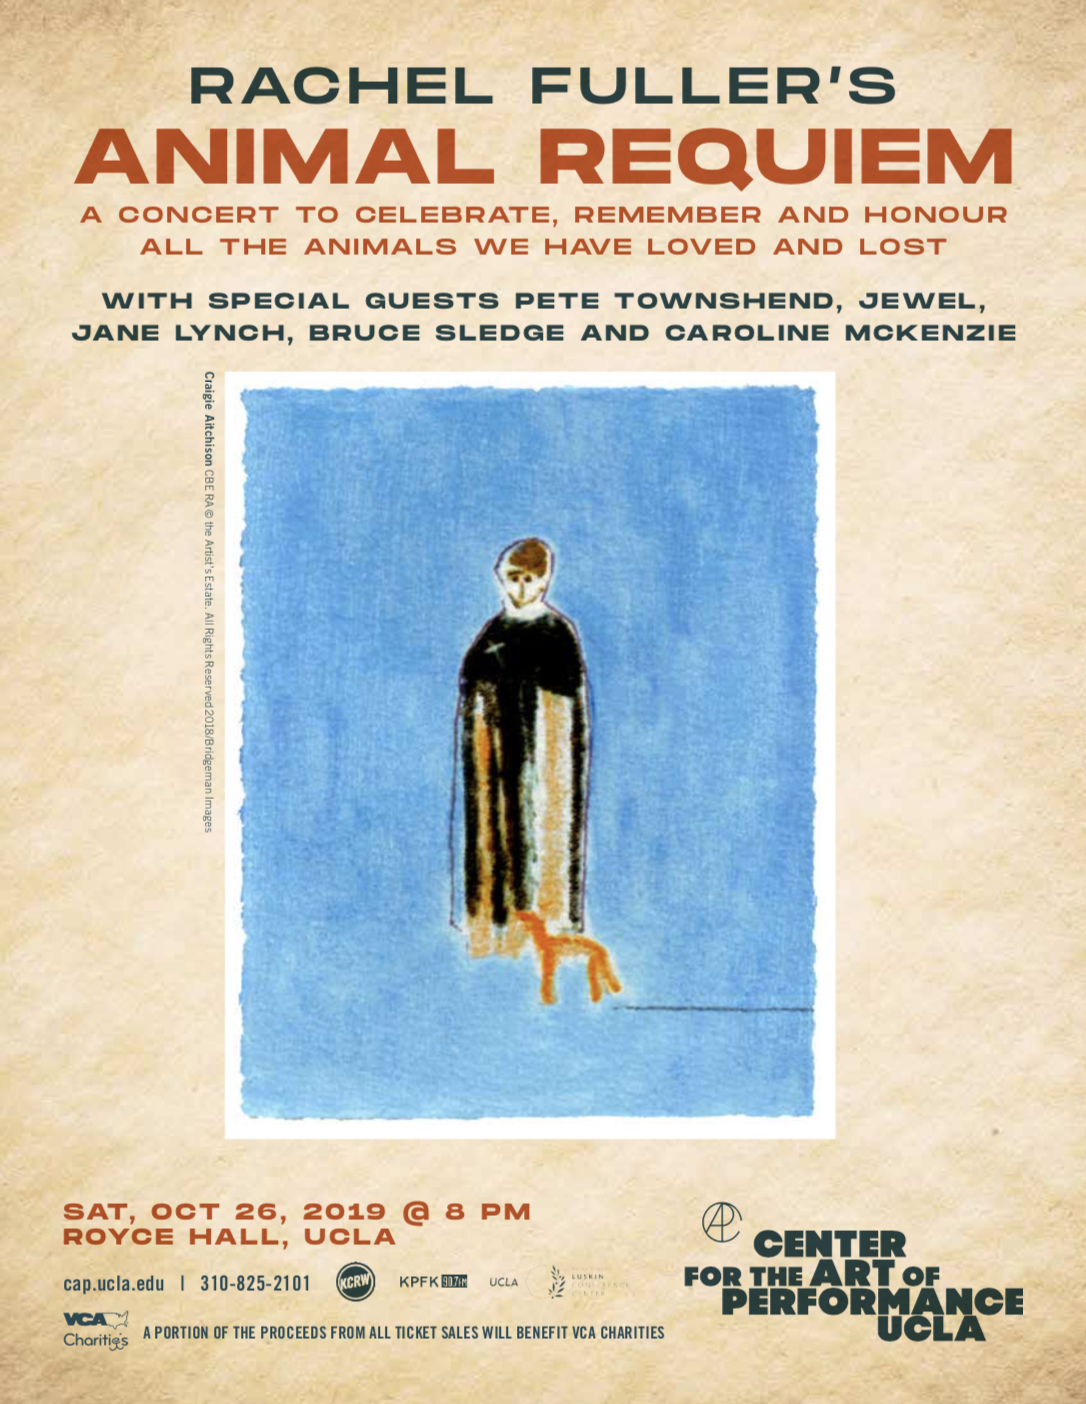 Rachel Fuller's Animal Requiem To Be Performed in Los Angeles